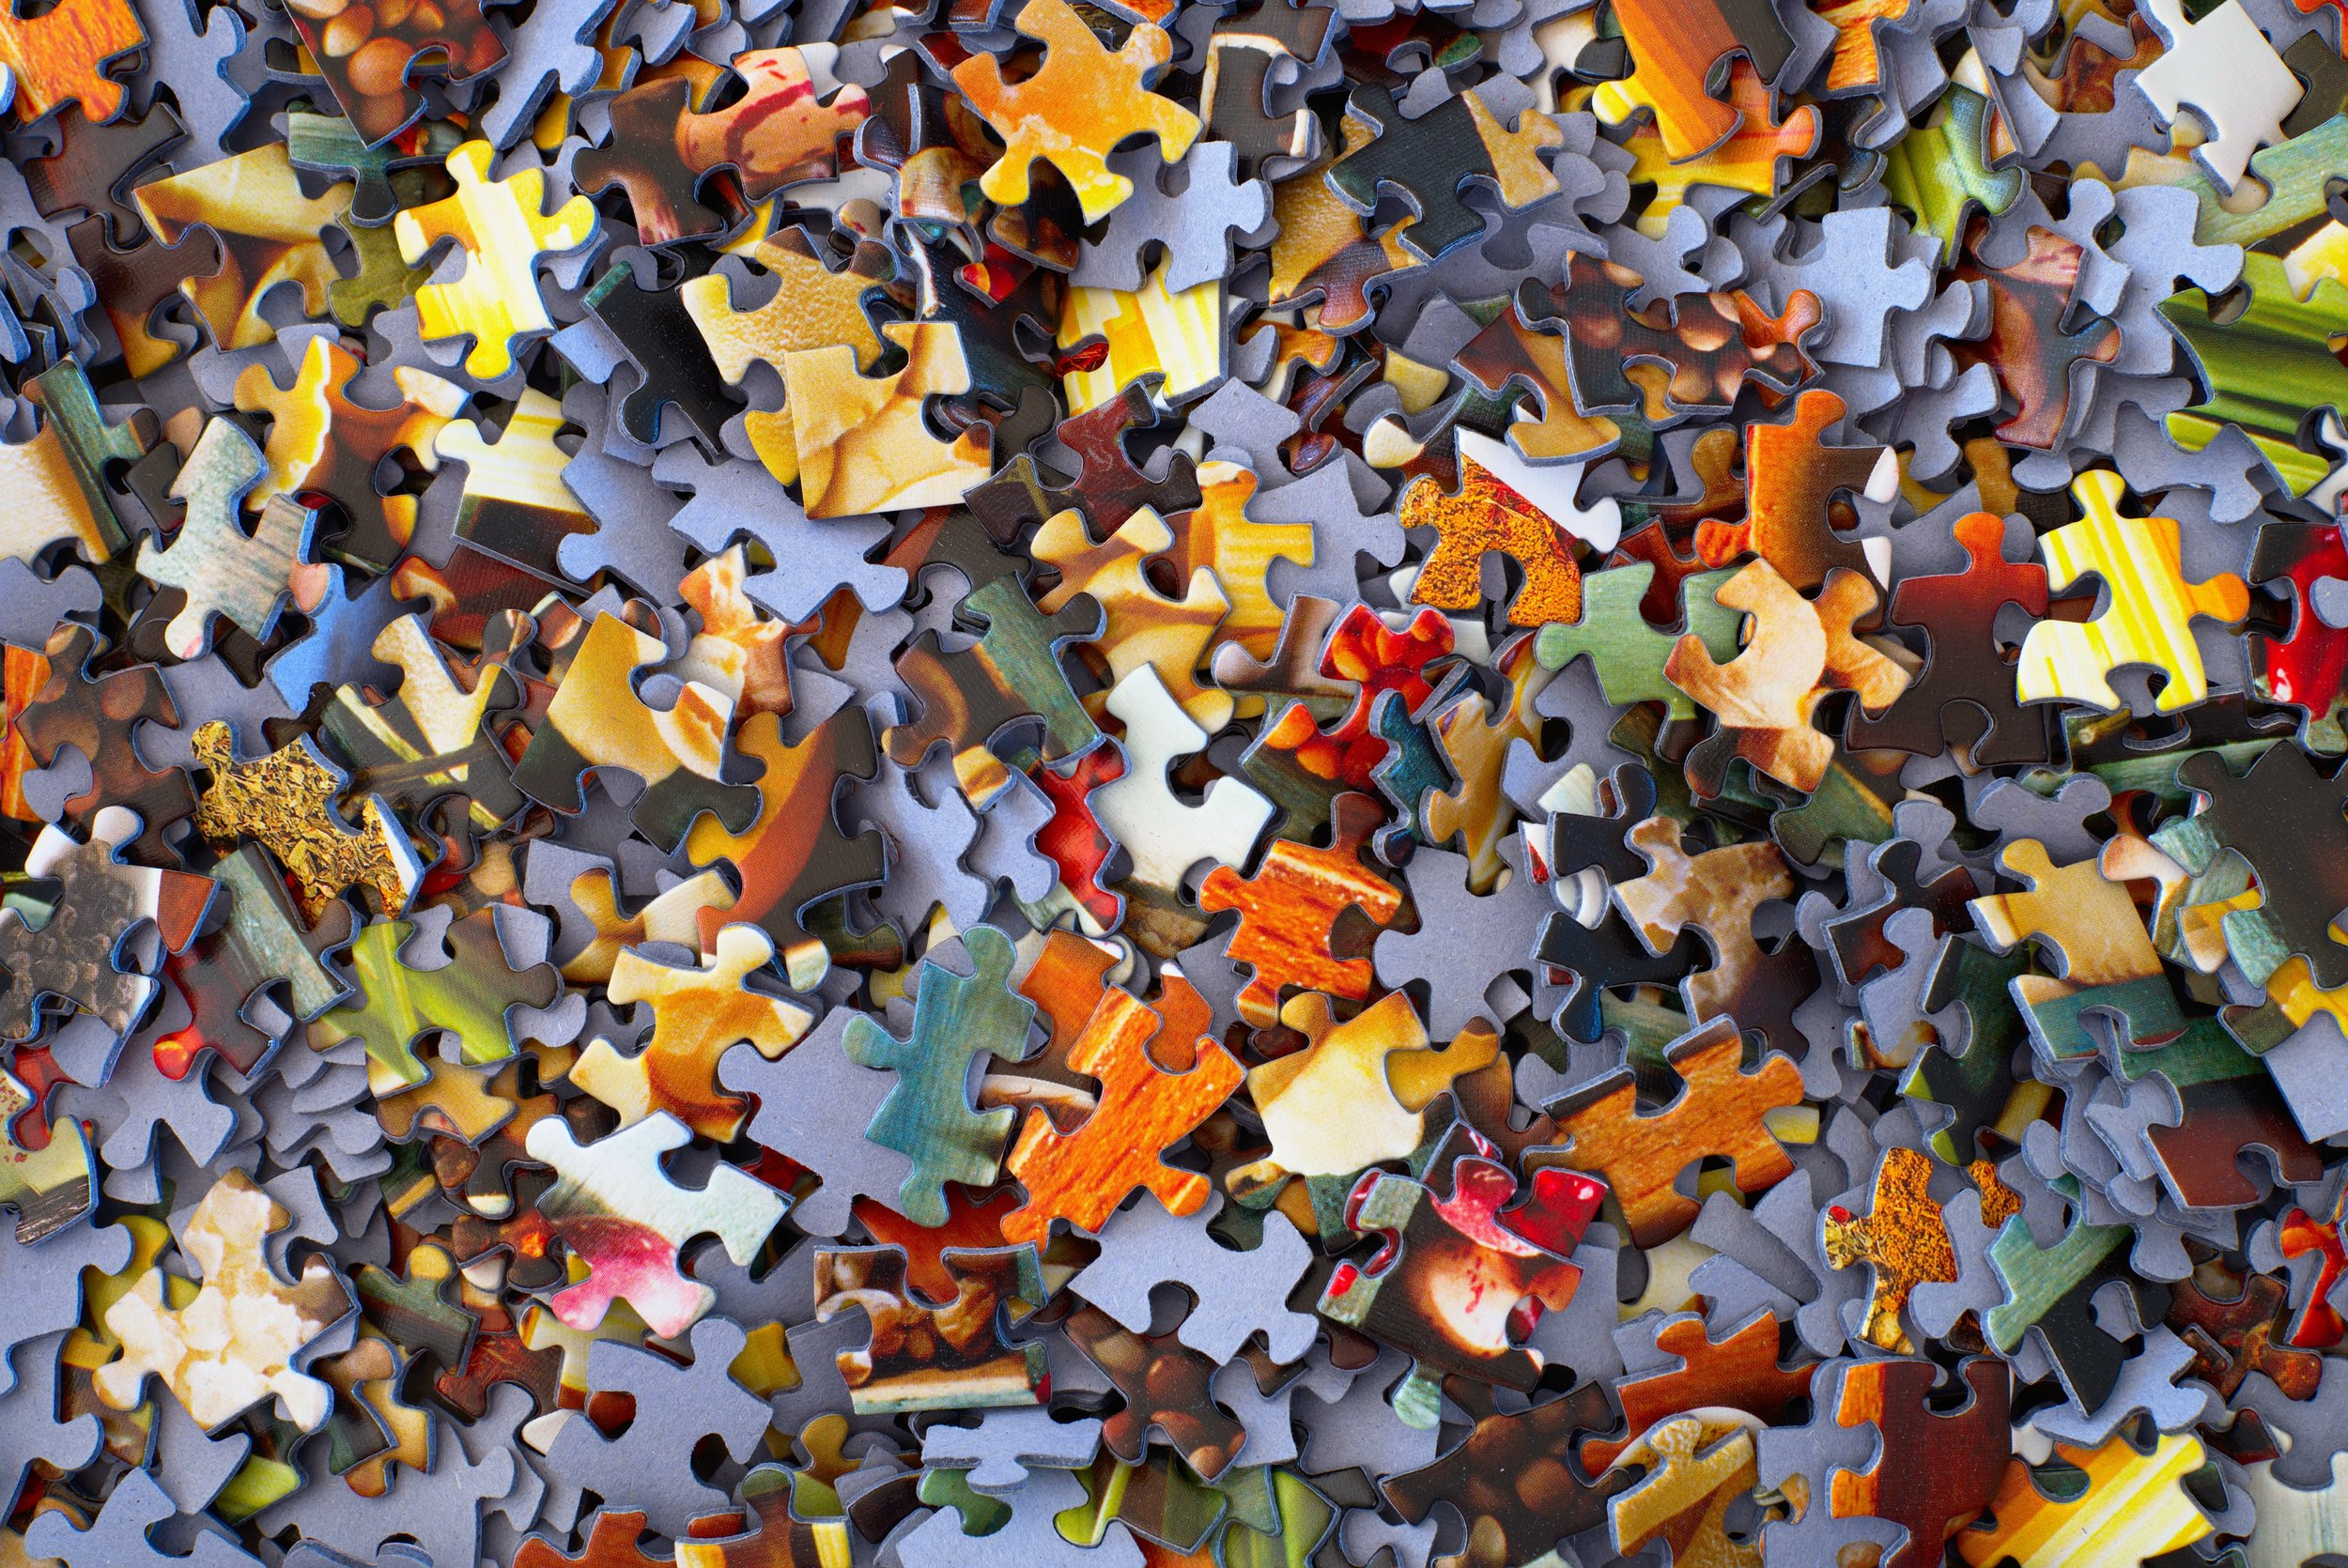 Still puzzled about coaching? - WANT MORE PRACTICE?